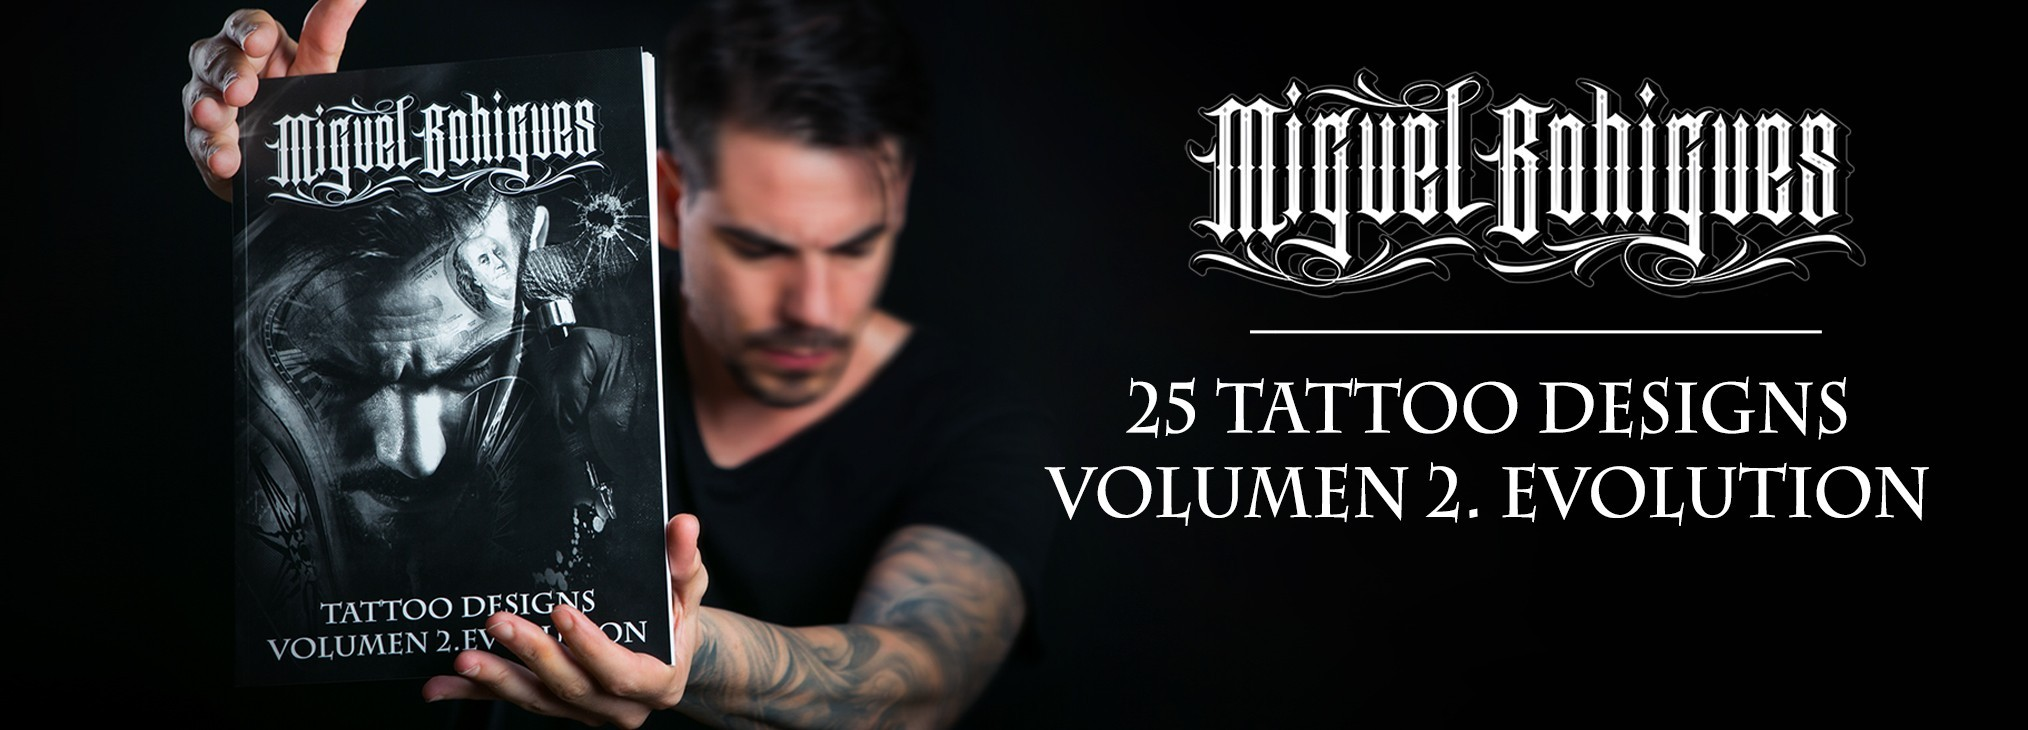 BOOK TATTOO DESIGNS VOL2 BY MIGUEL BOHIGUES